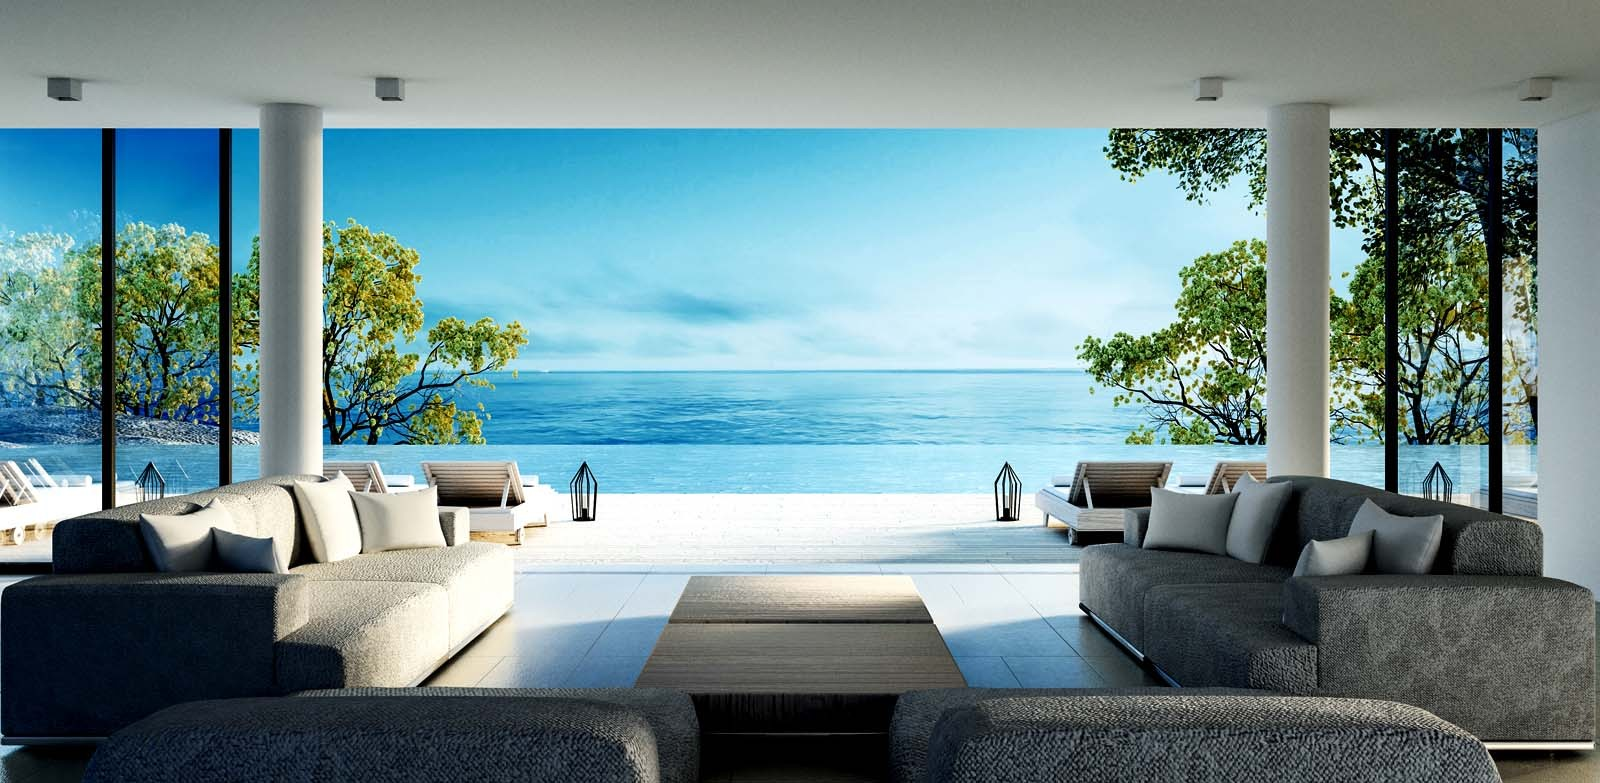 Living Room by the Sea